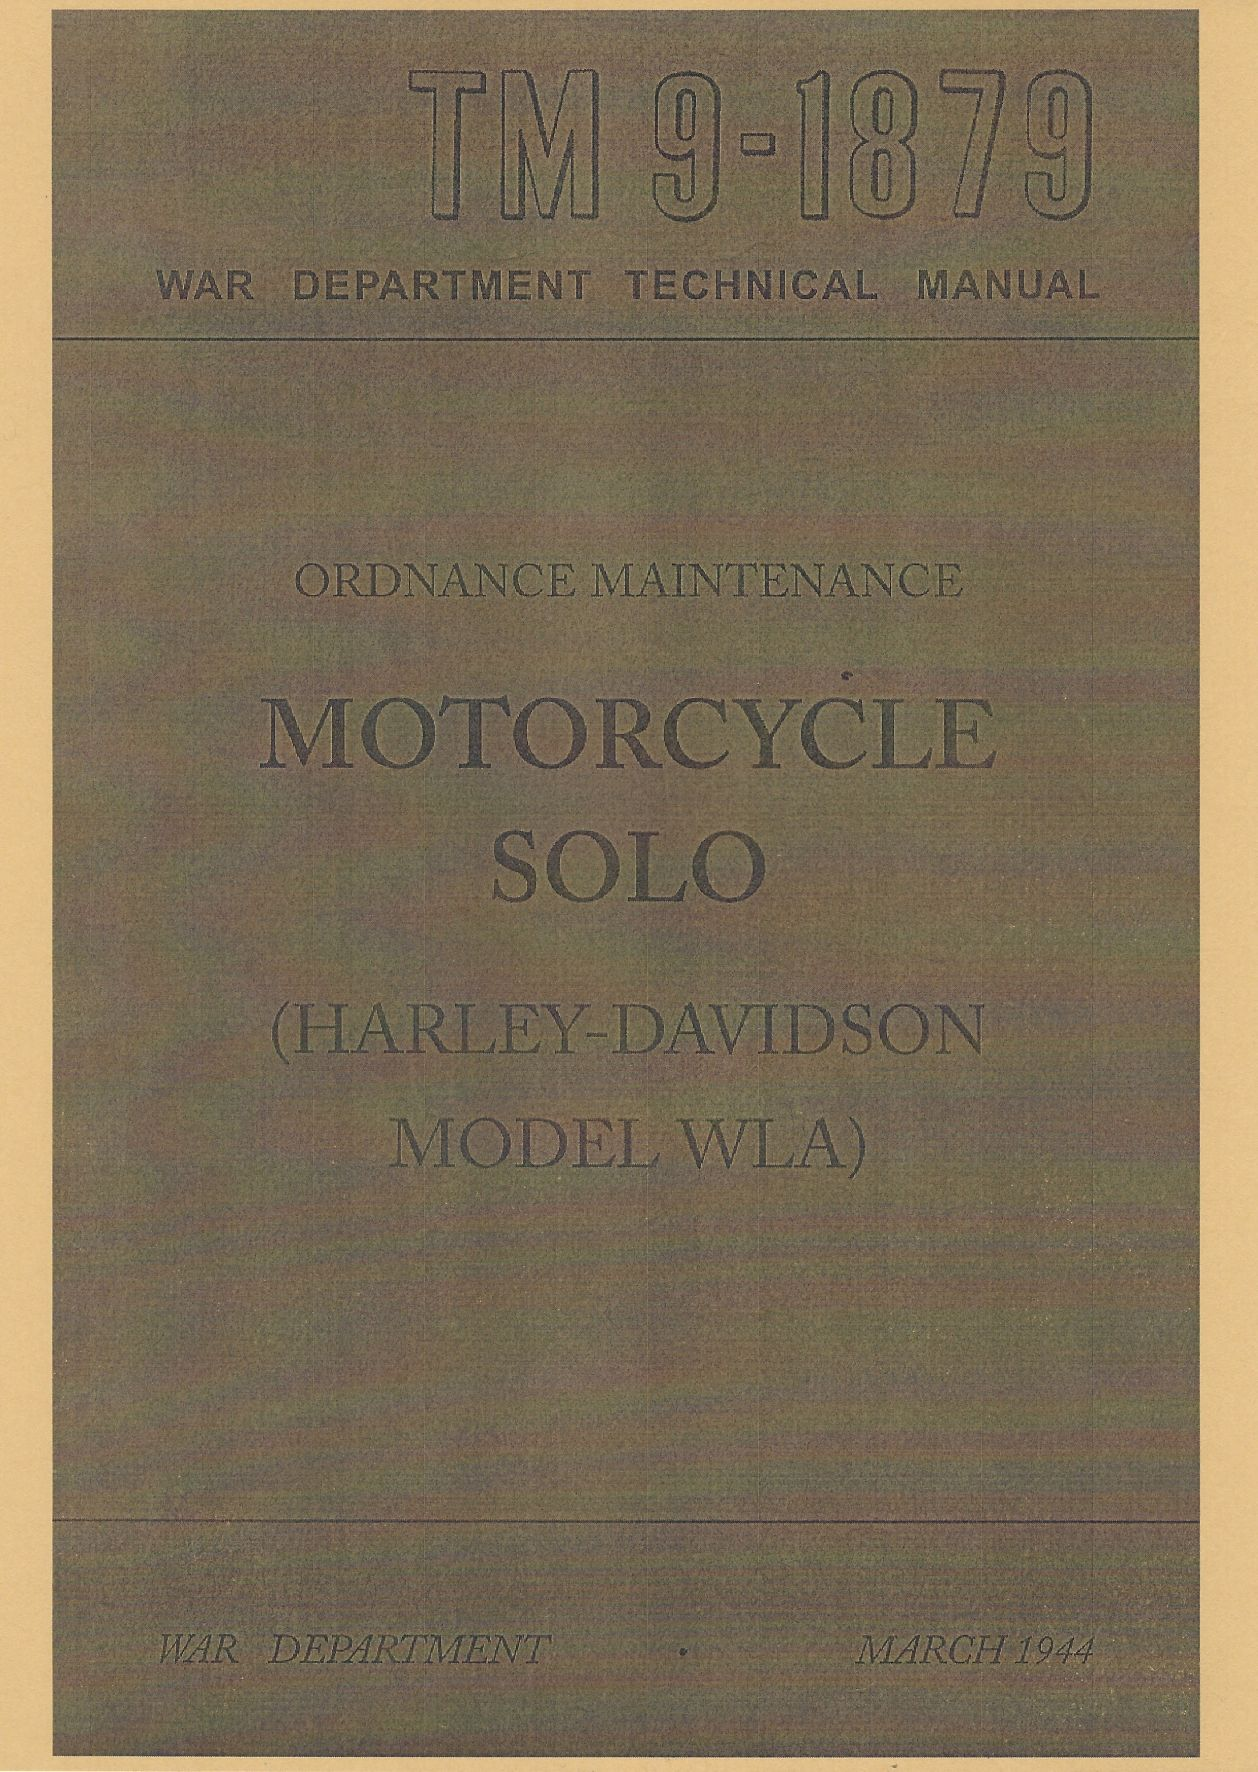 TM 9-1879 US MOTORCYCLE SOLO (HARLEY-DAVIDSON MODEL WLA)